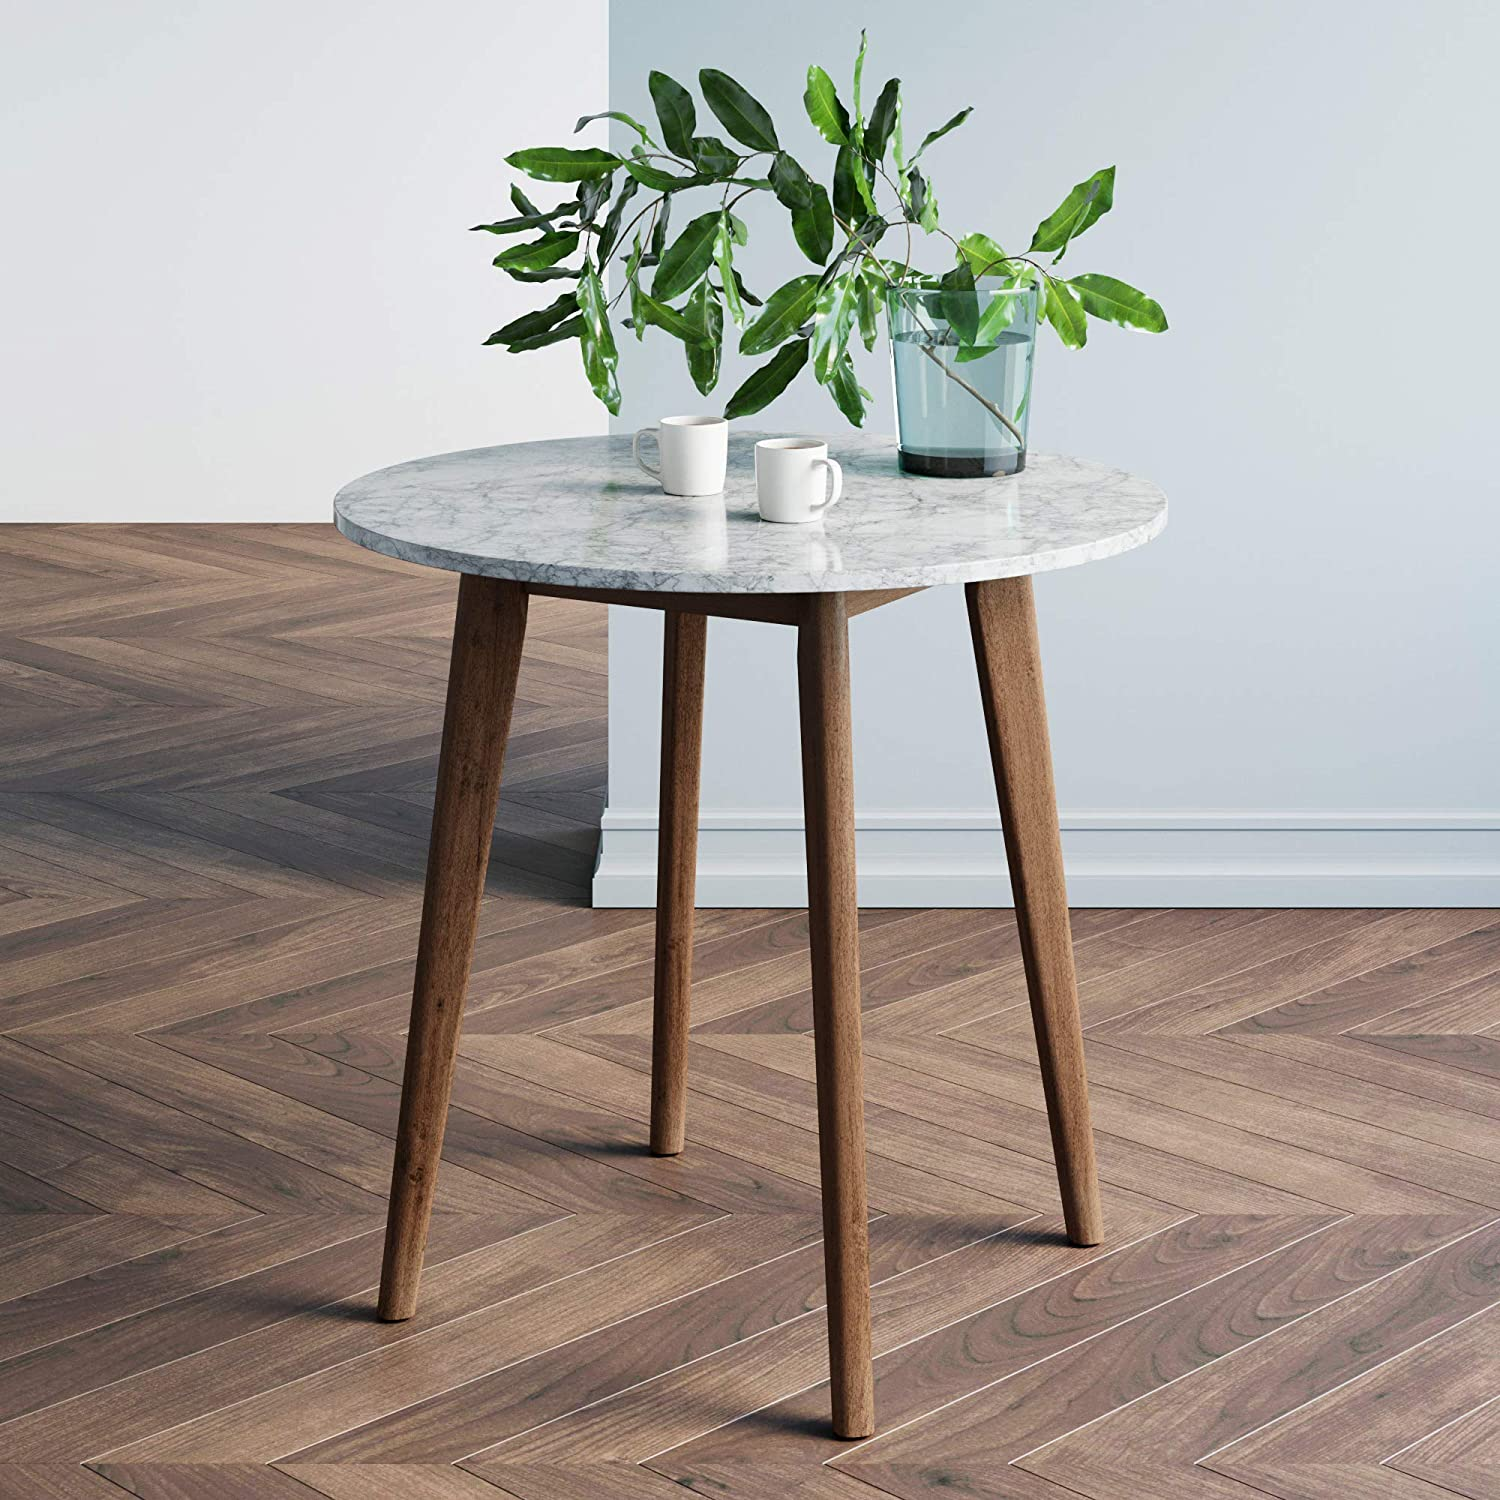 Nathan James Amalia Round Marble Bistro Dining Table with Legs in Wood Finish and Faux White Carrara Marble Table Top, Antique Coffee